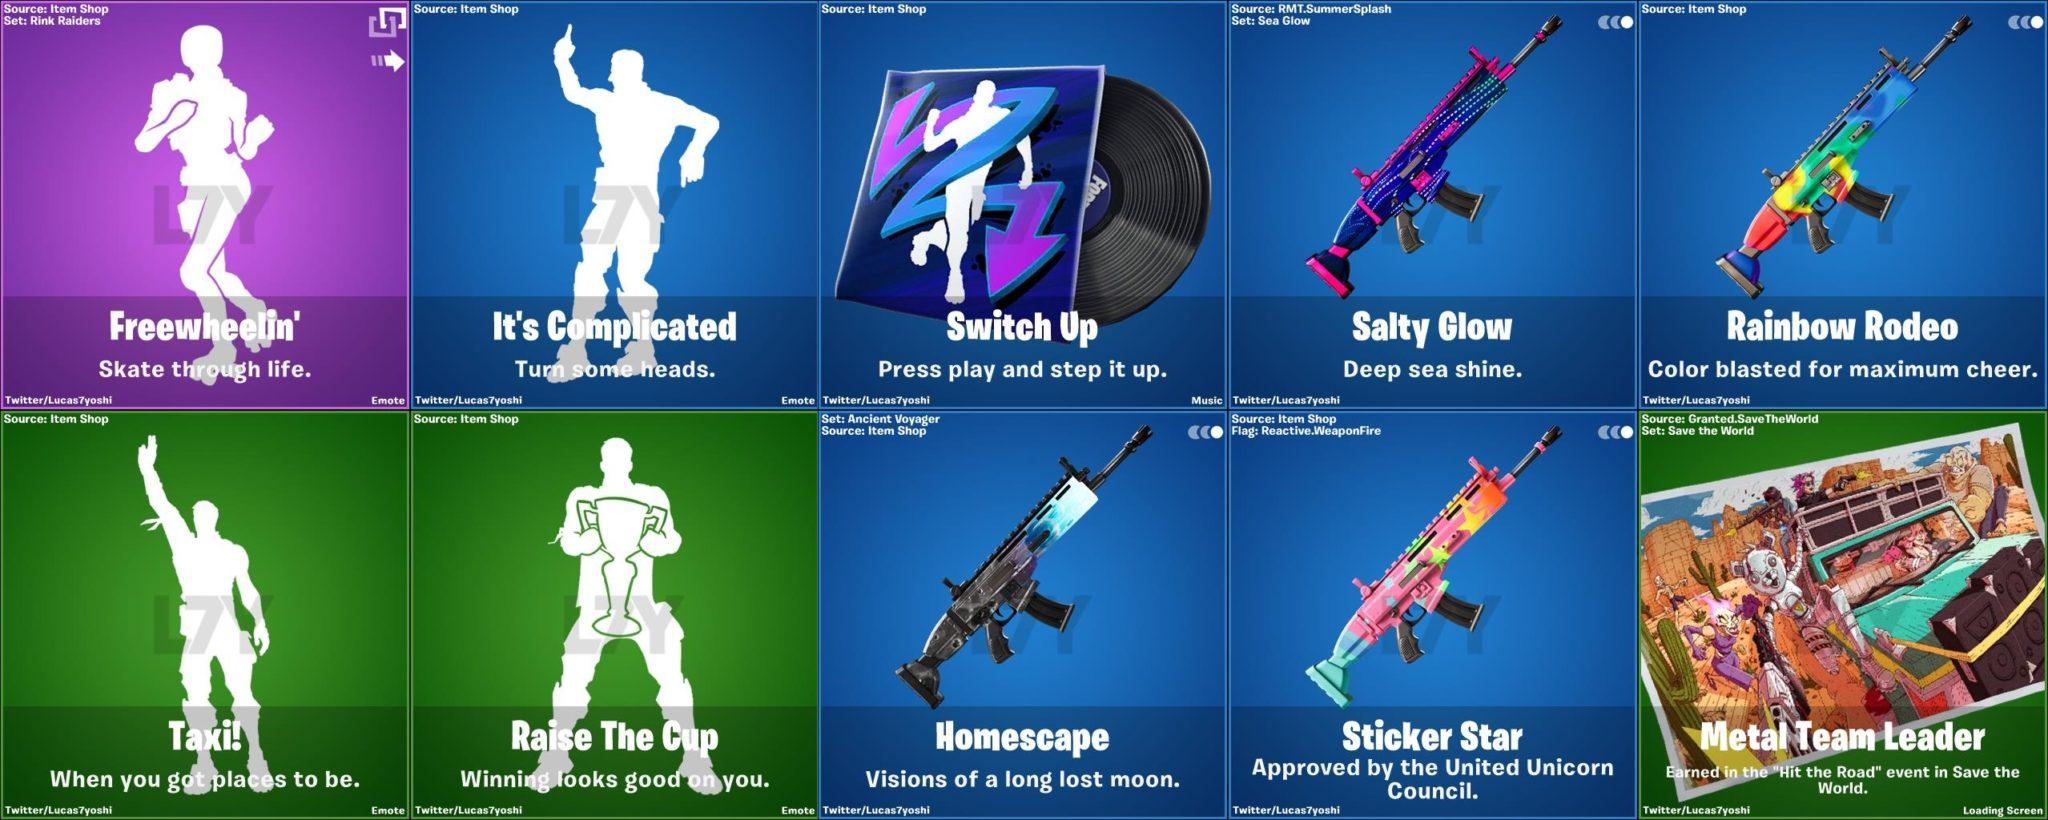 Leaked Fortnite v13.40 weapon camos and emotes